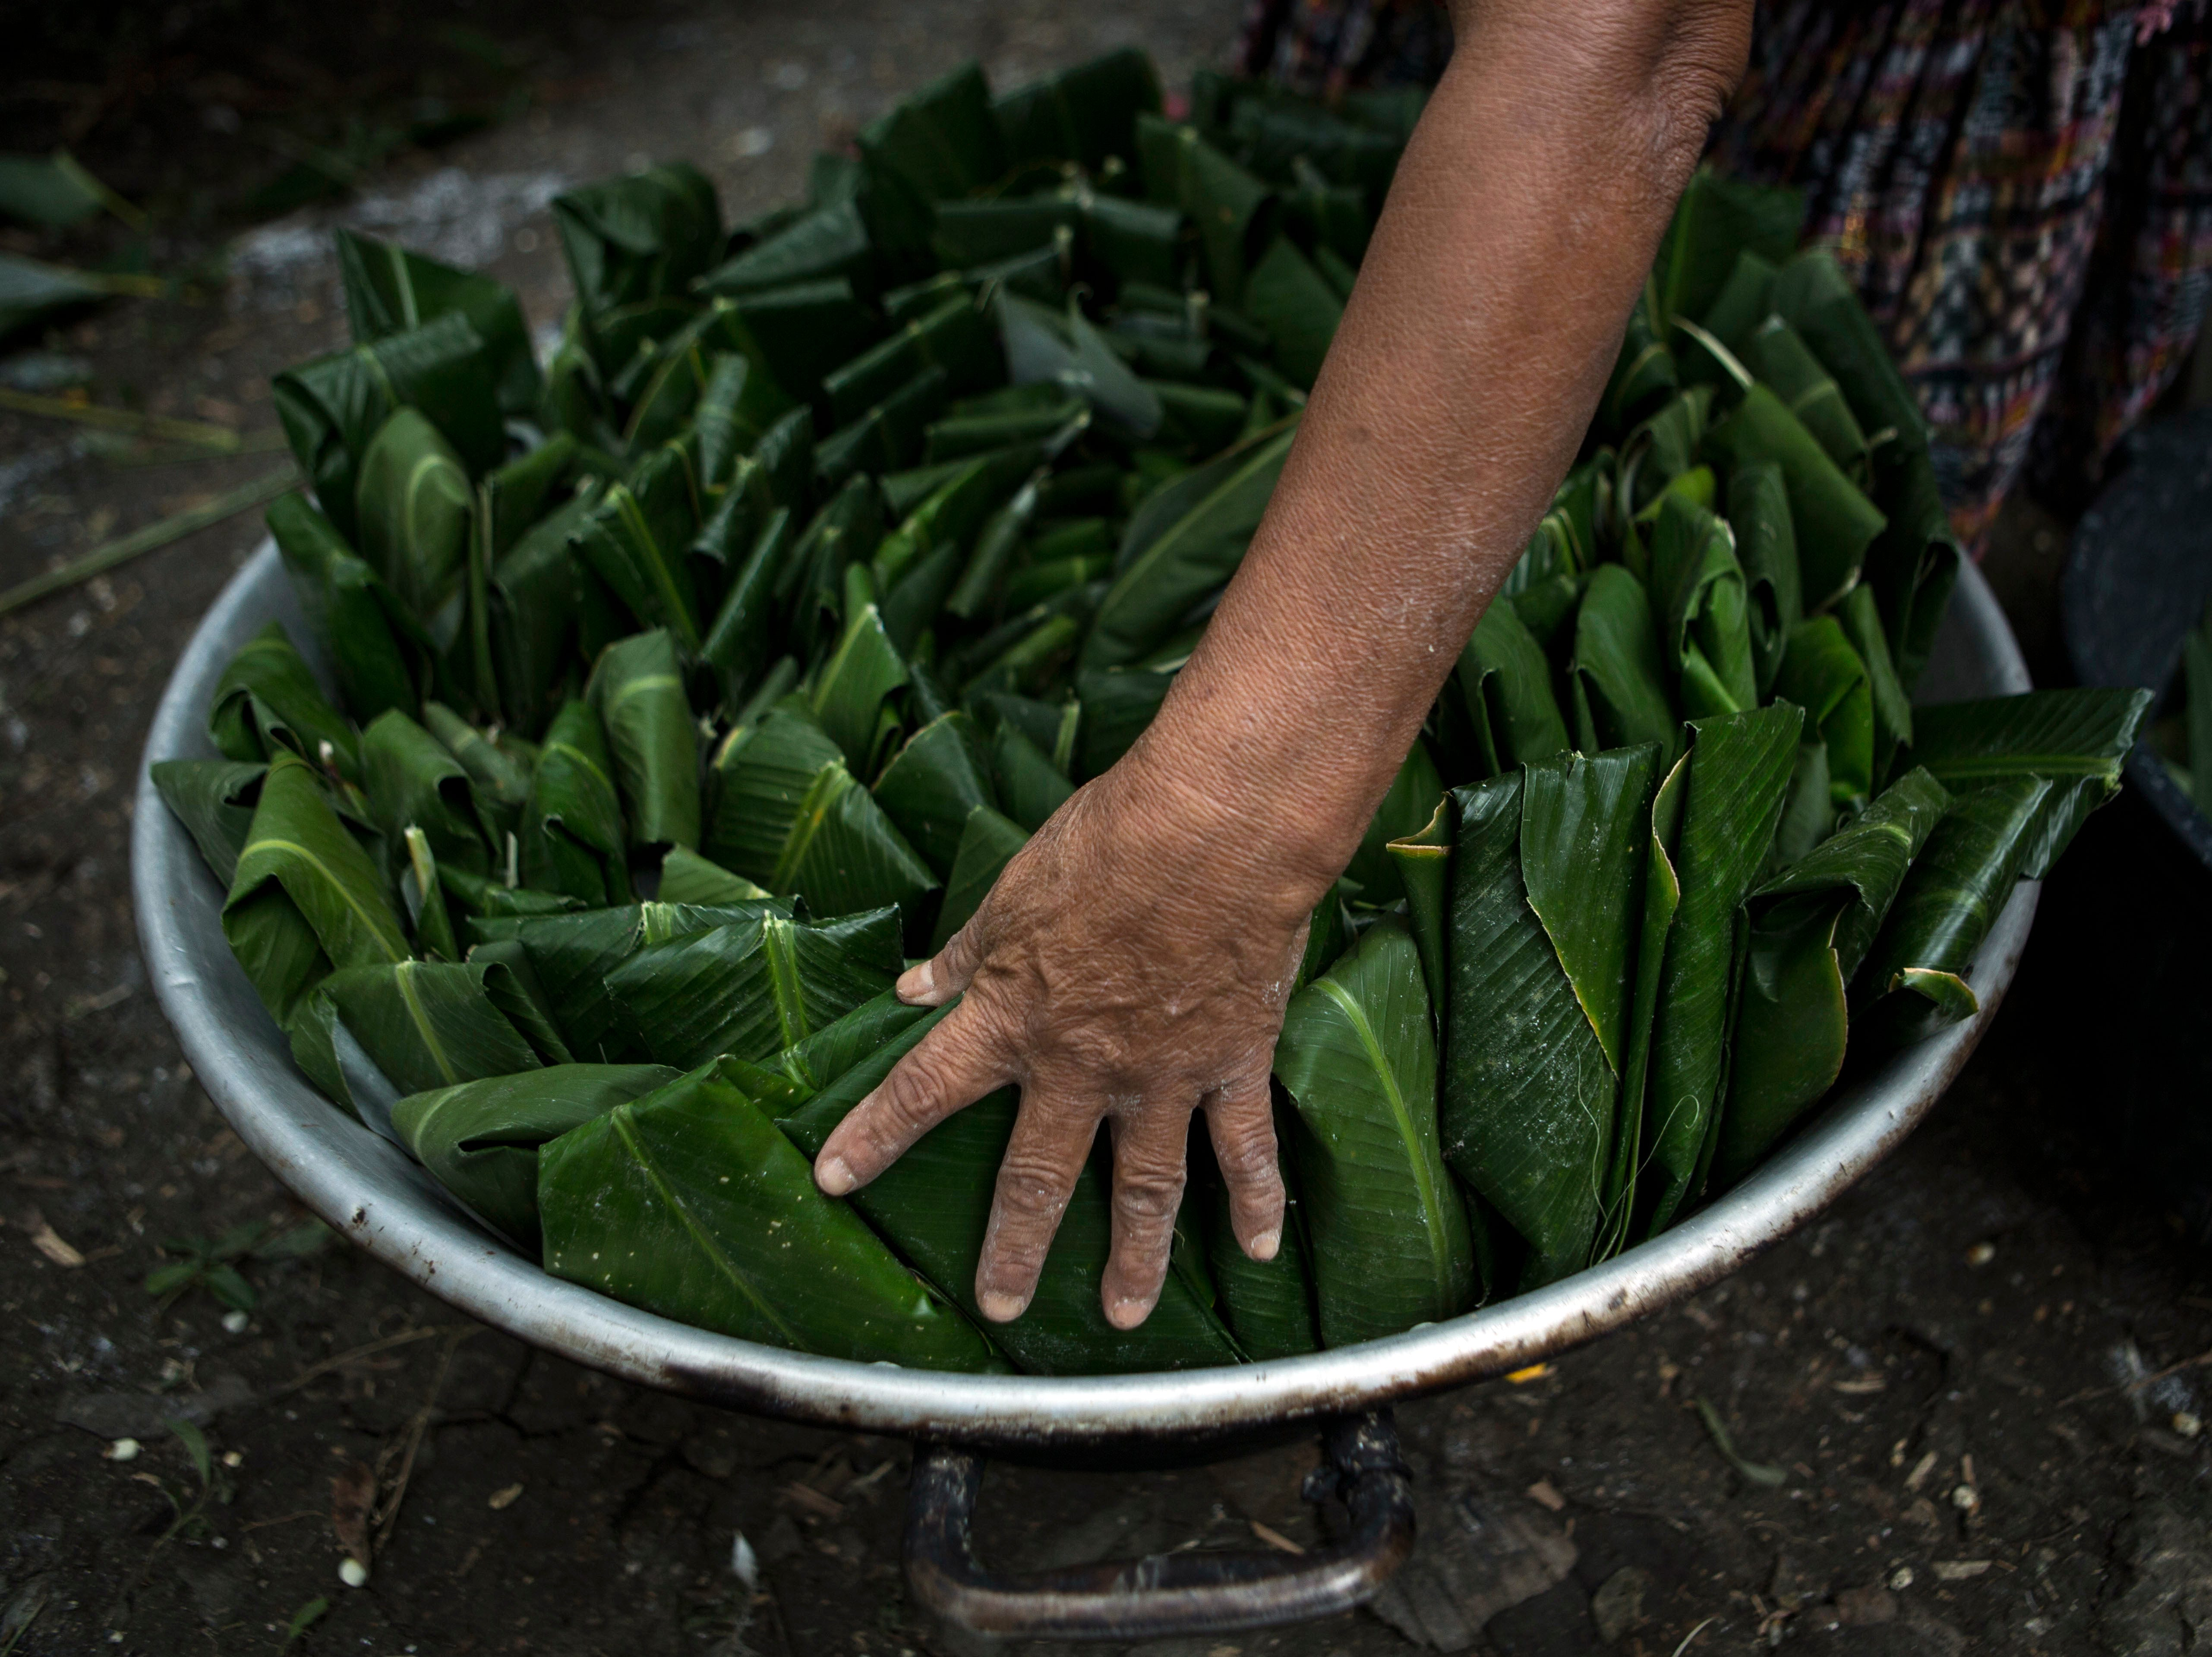 A woman cooks tamales for the relatives and neighbors who attend the funeral for Jakelin Caal Maquin, in San Antonio Secortez, Guatemala, Sunday, Dec. 23, 2018. The body of Caal Maquin, 7, who died while in custody of the U.S. Border Patrol, arrived in her native Guatemala on Sunday and was being driven hours into the countryside to be handed over to family members for a last goodbye.